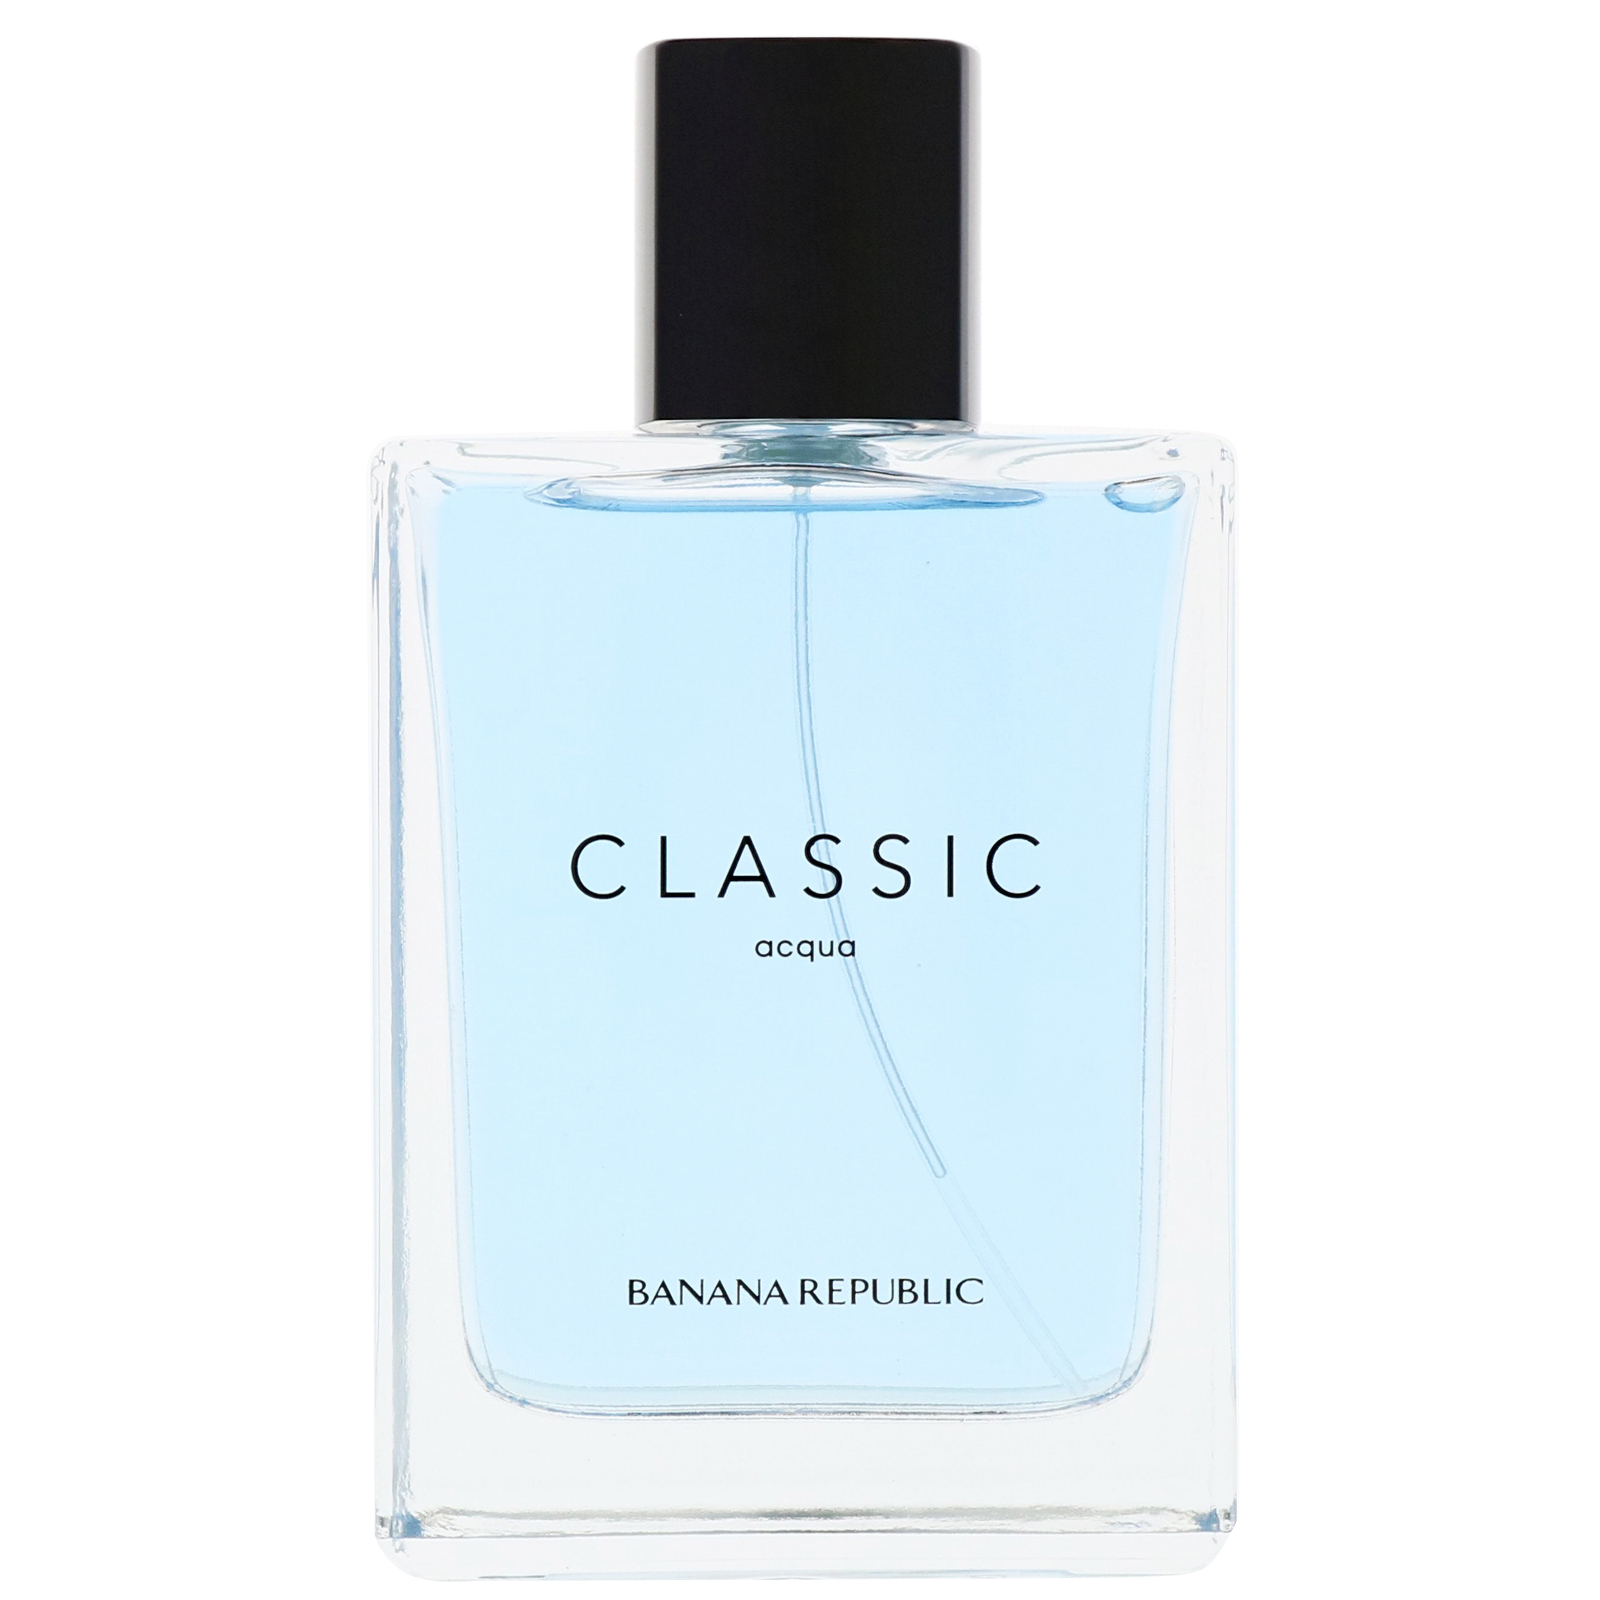 Banana Republic Classic Aqua Eau de Parfum Spray 125ml